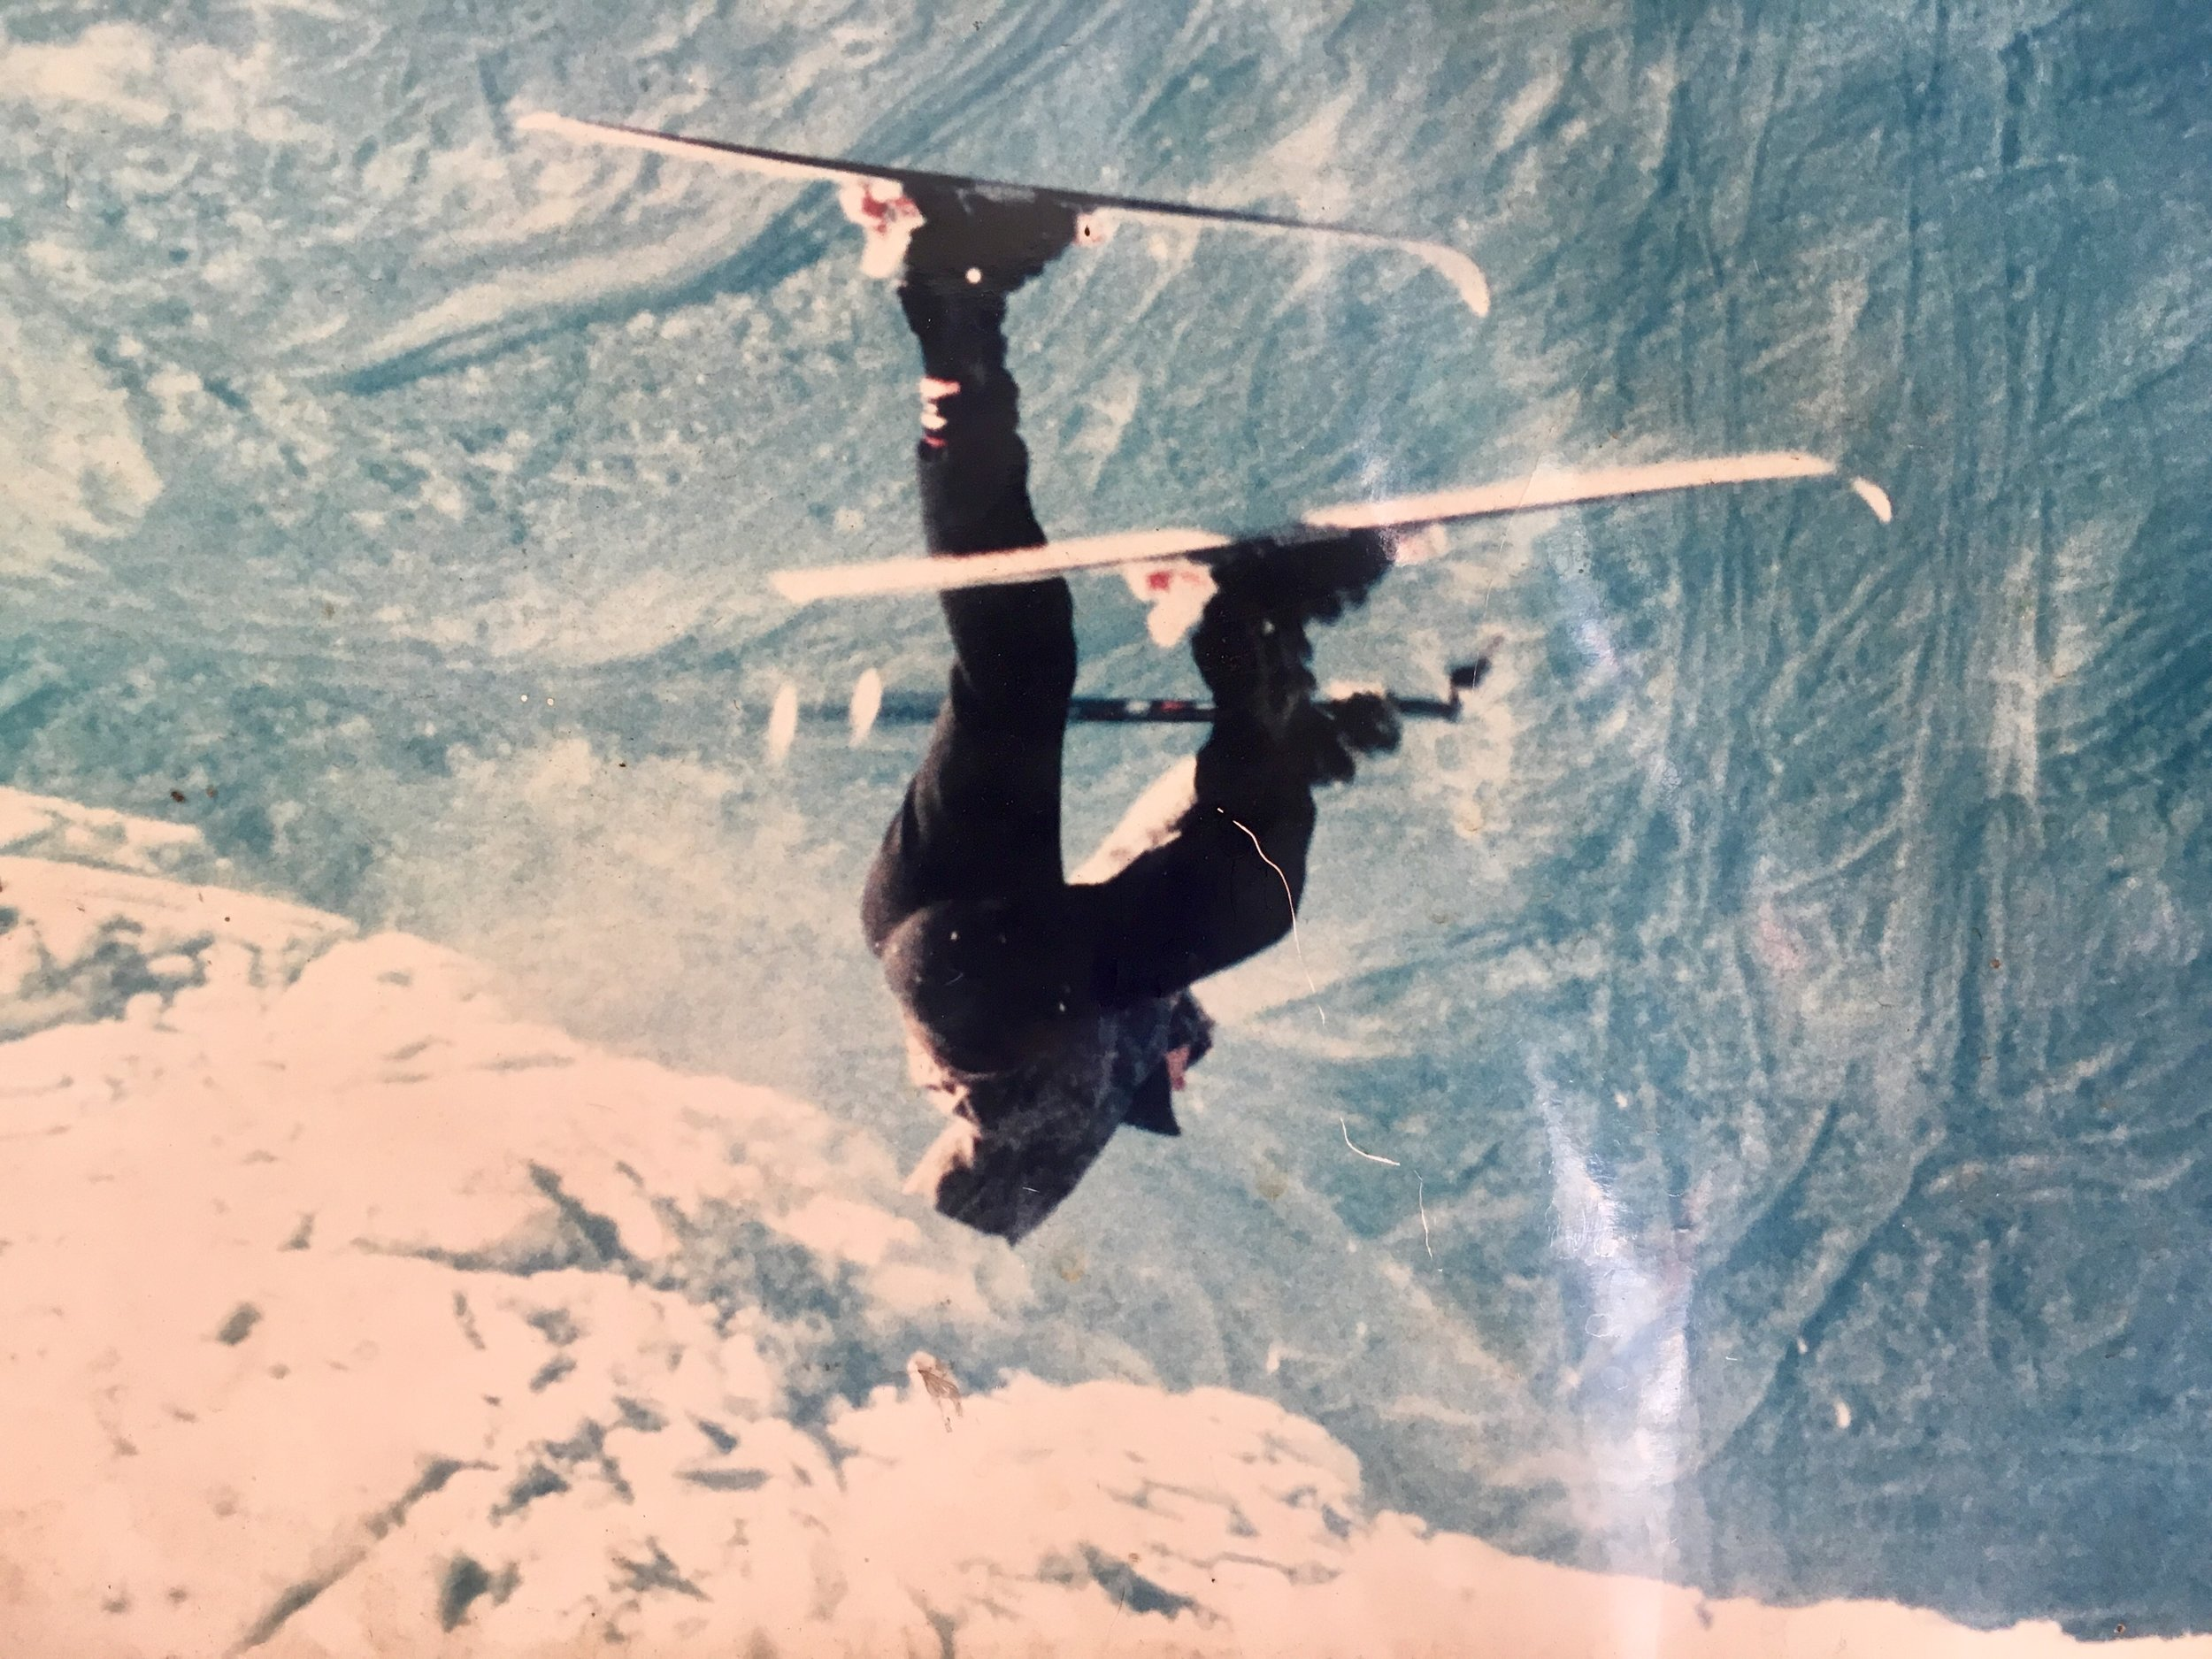 Porridge Bowl at Bear Valley - The year was 1987, hand-stand going up the cornice. While the picture looks like I'm headed downward my moving trajectory is actually going up over the cornice.